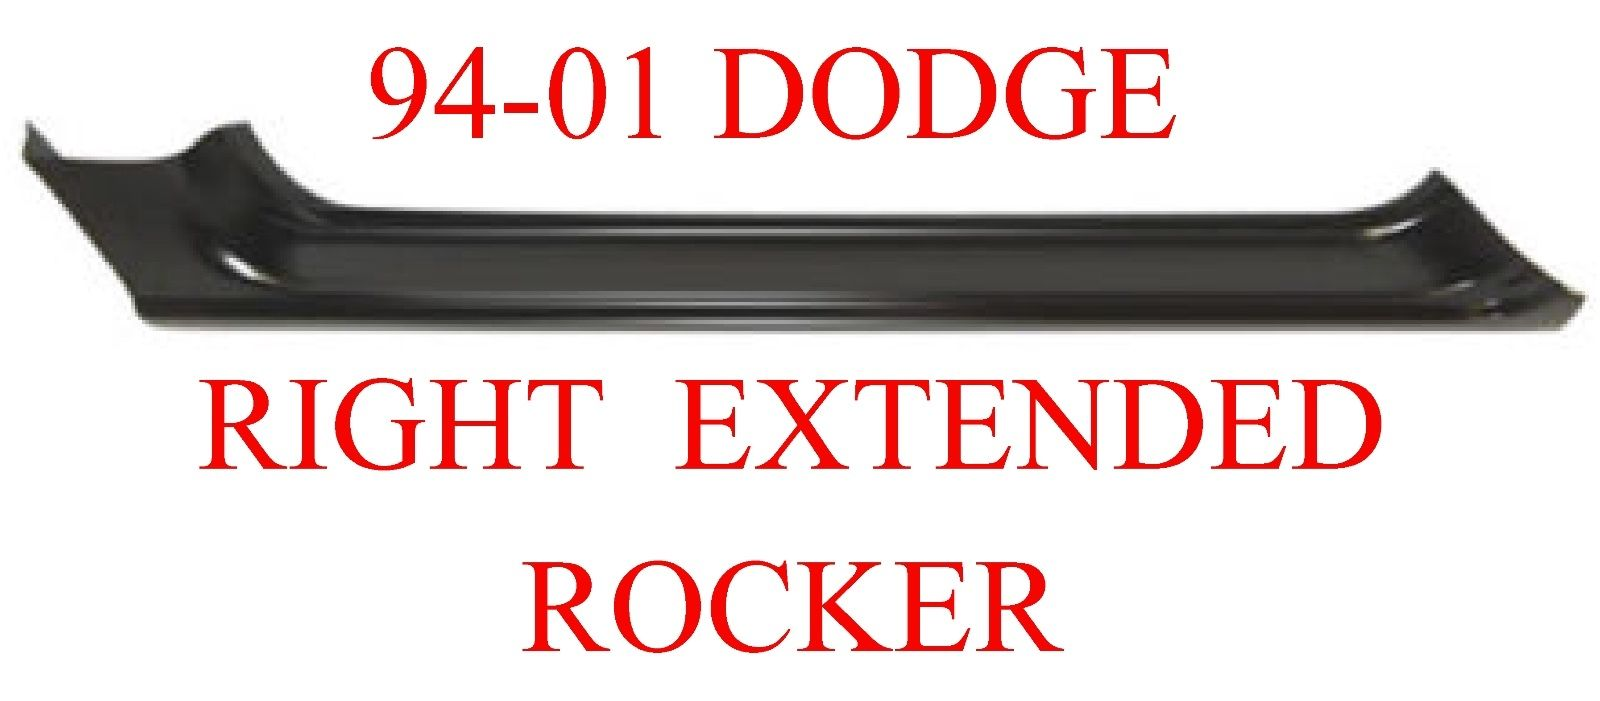 94-01 Dodge Ram Right Extended Rocker